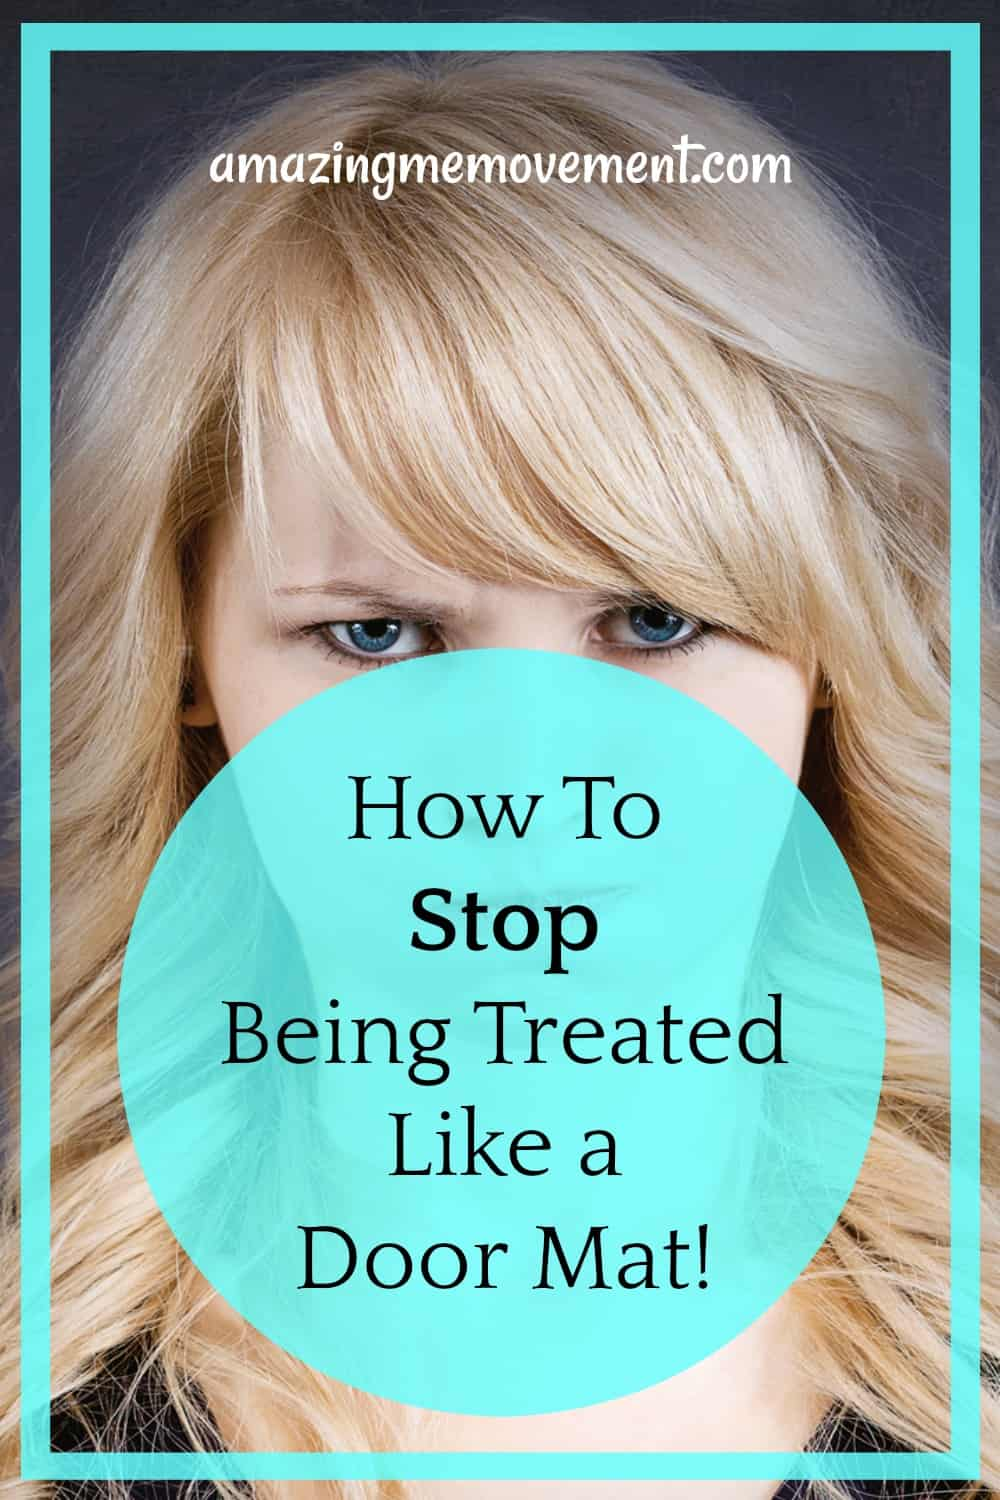 How to stop being treated like a door mat